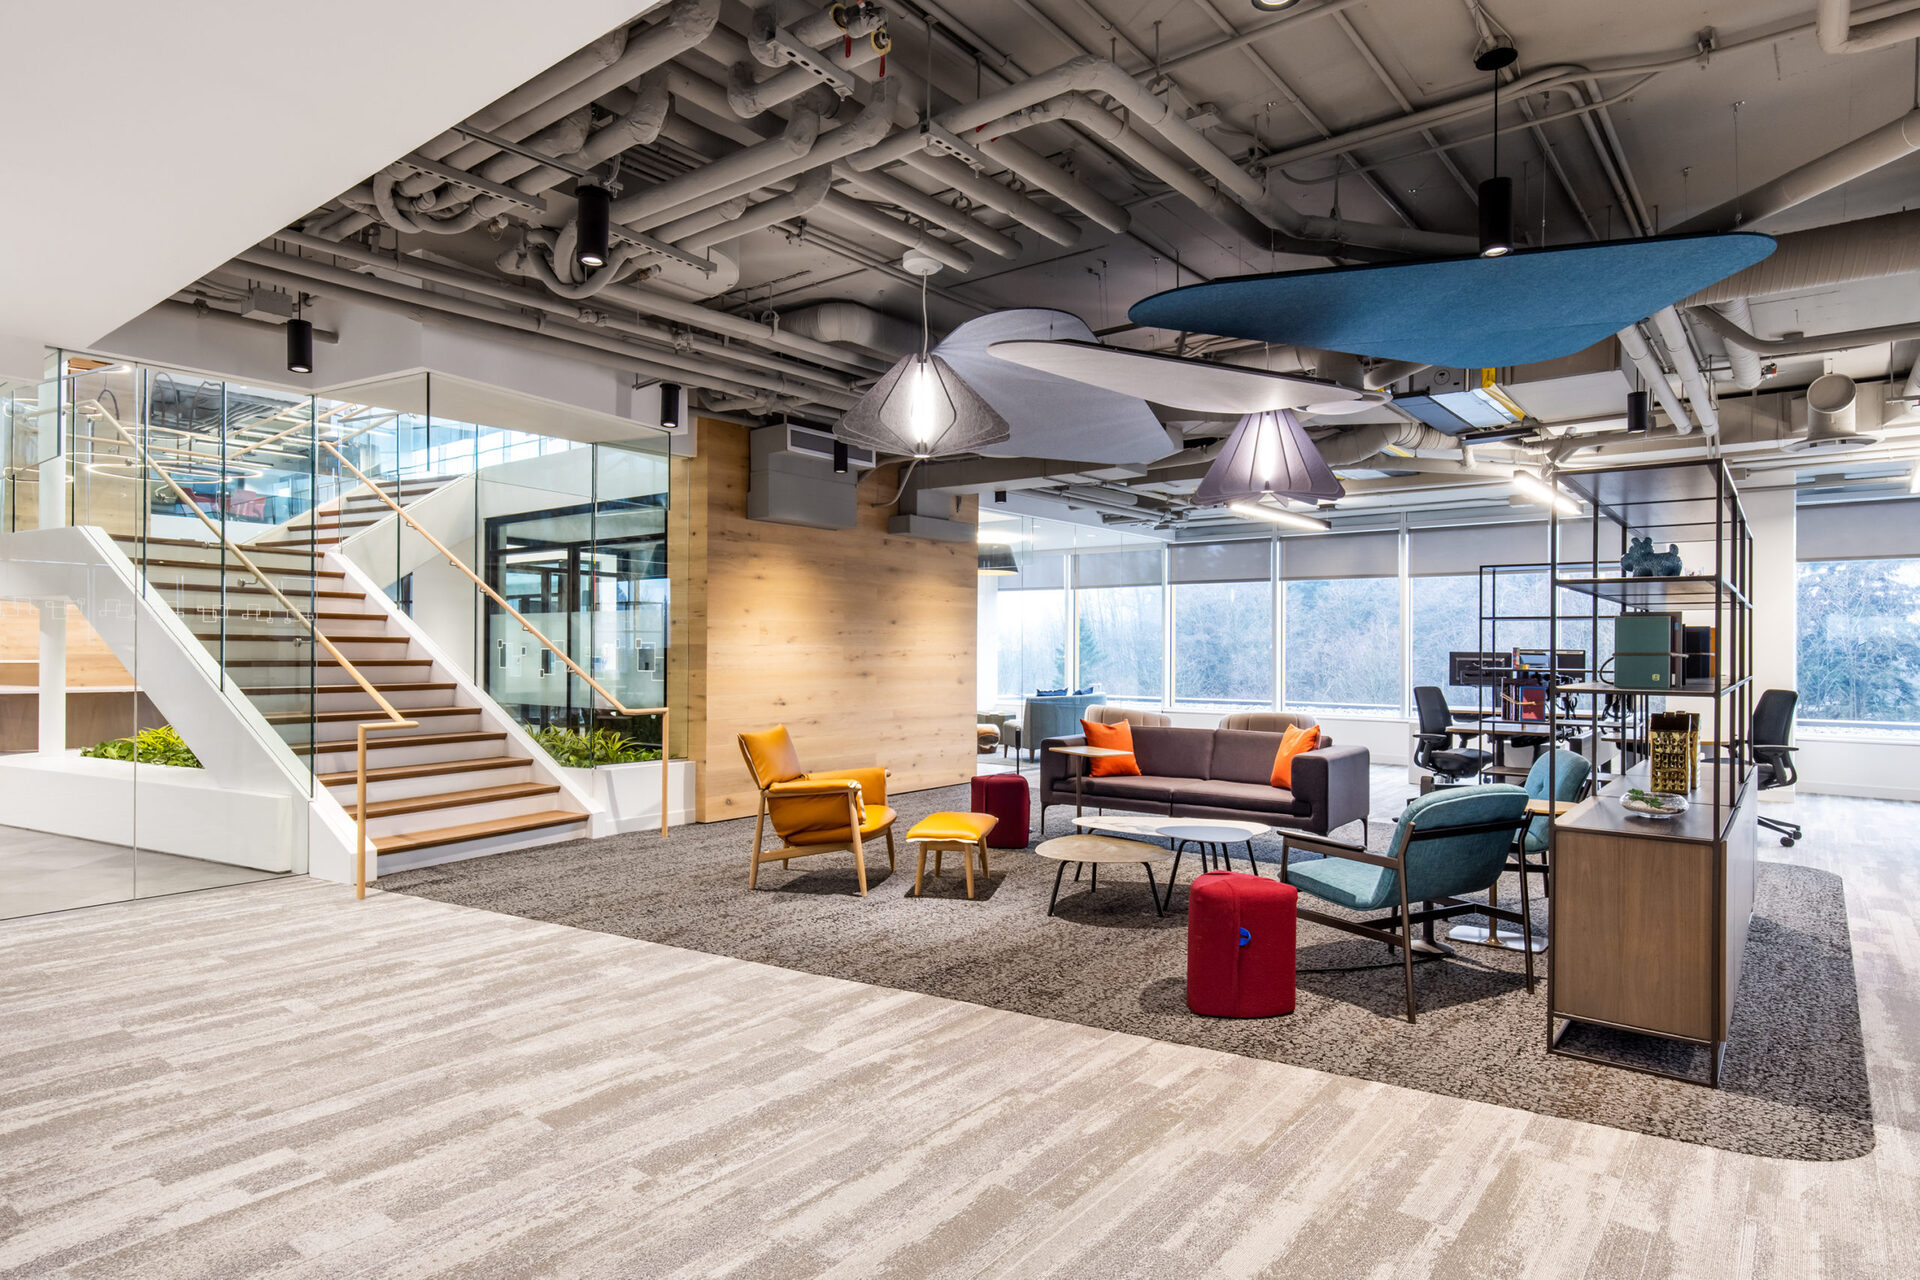 Fully enclosed to minimize accumulation of dust and debris, the Kwyet Acoustic Pendant hanging lights are designed for function and style and fit perfectly in this open office space.